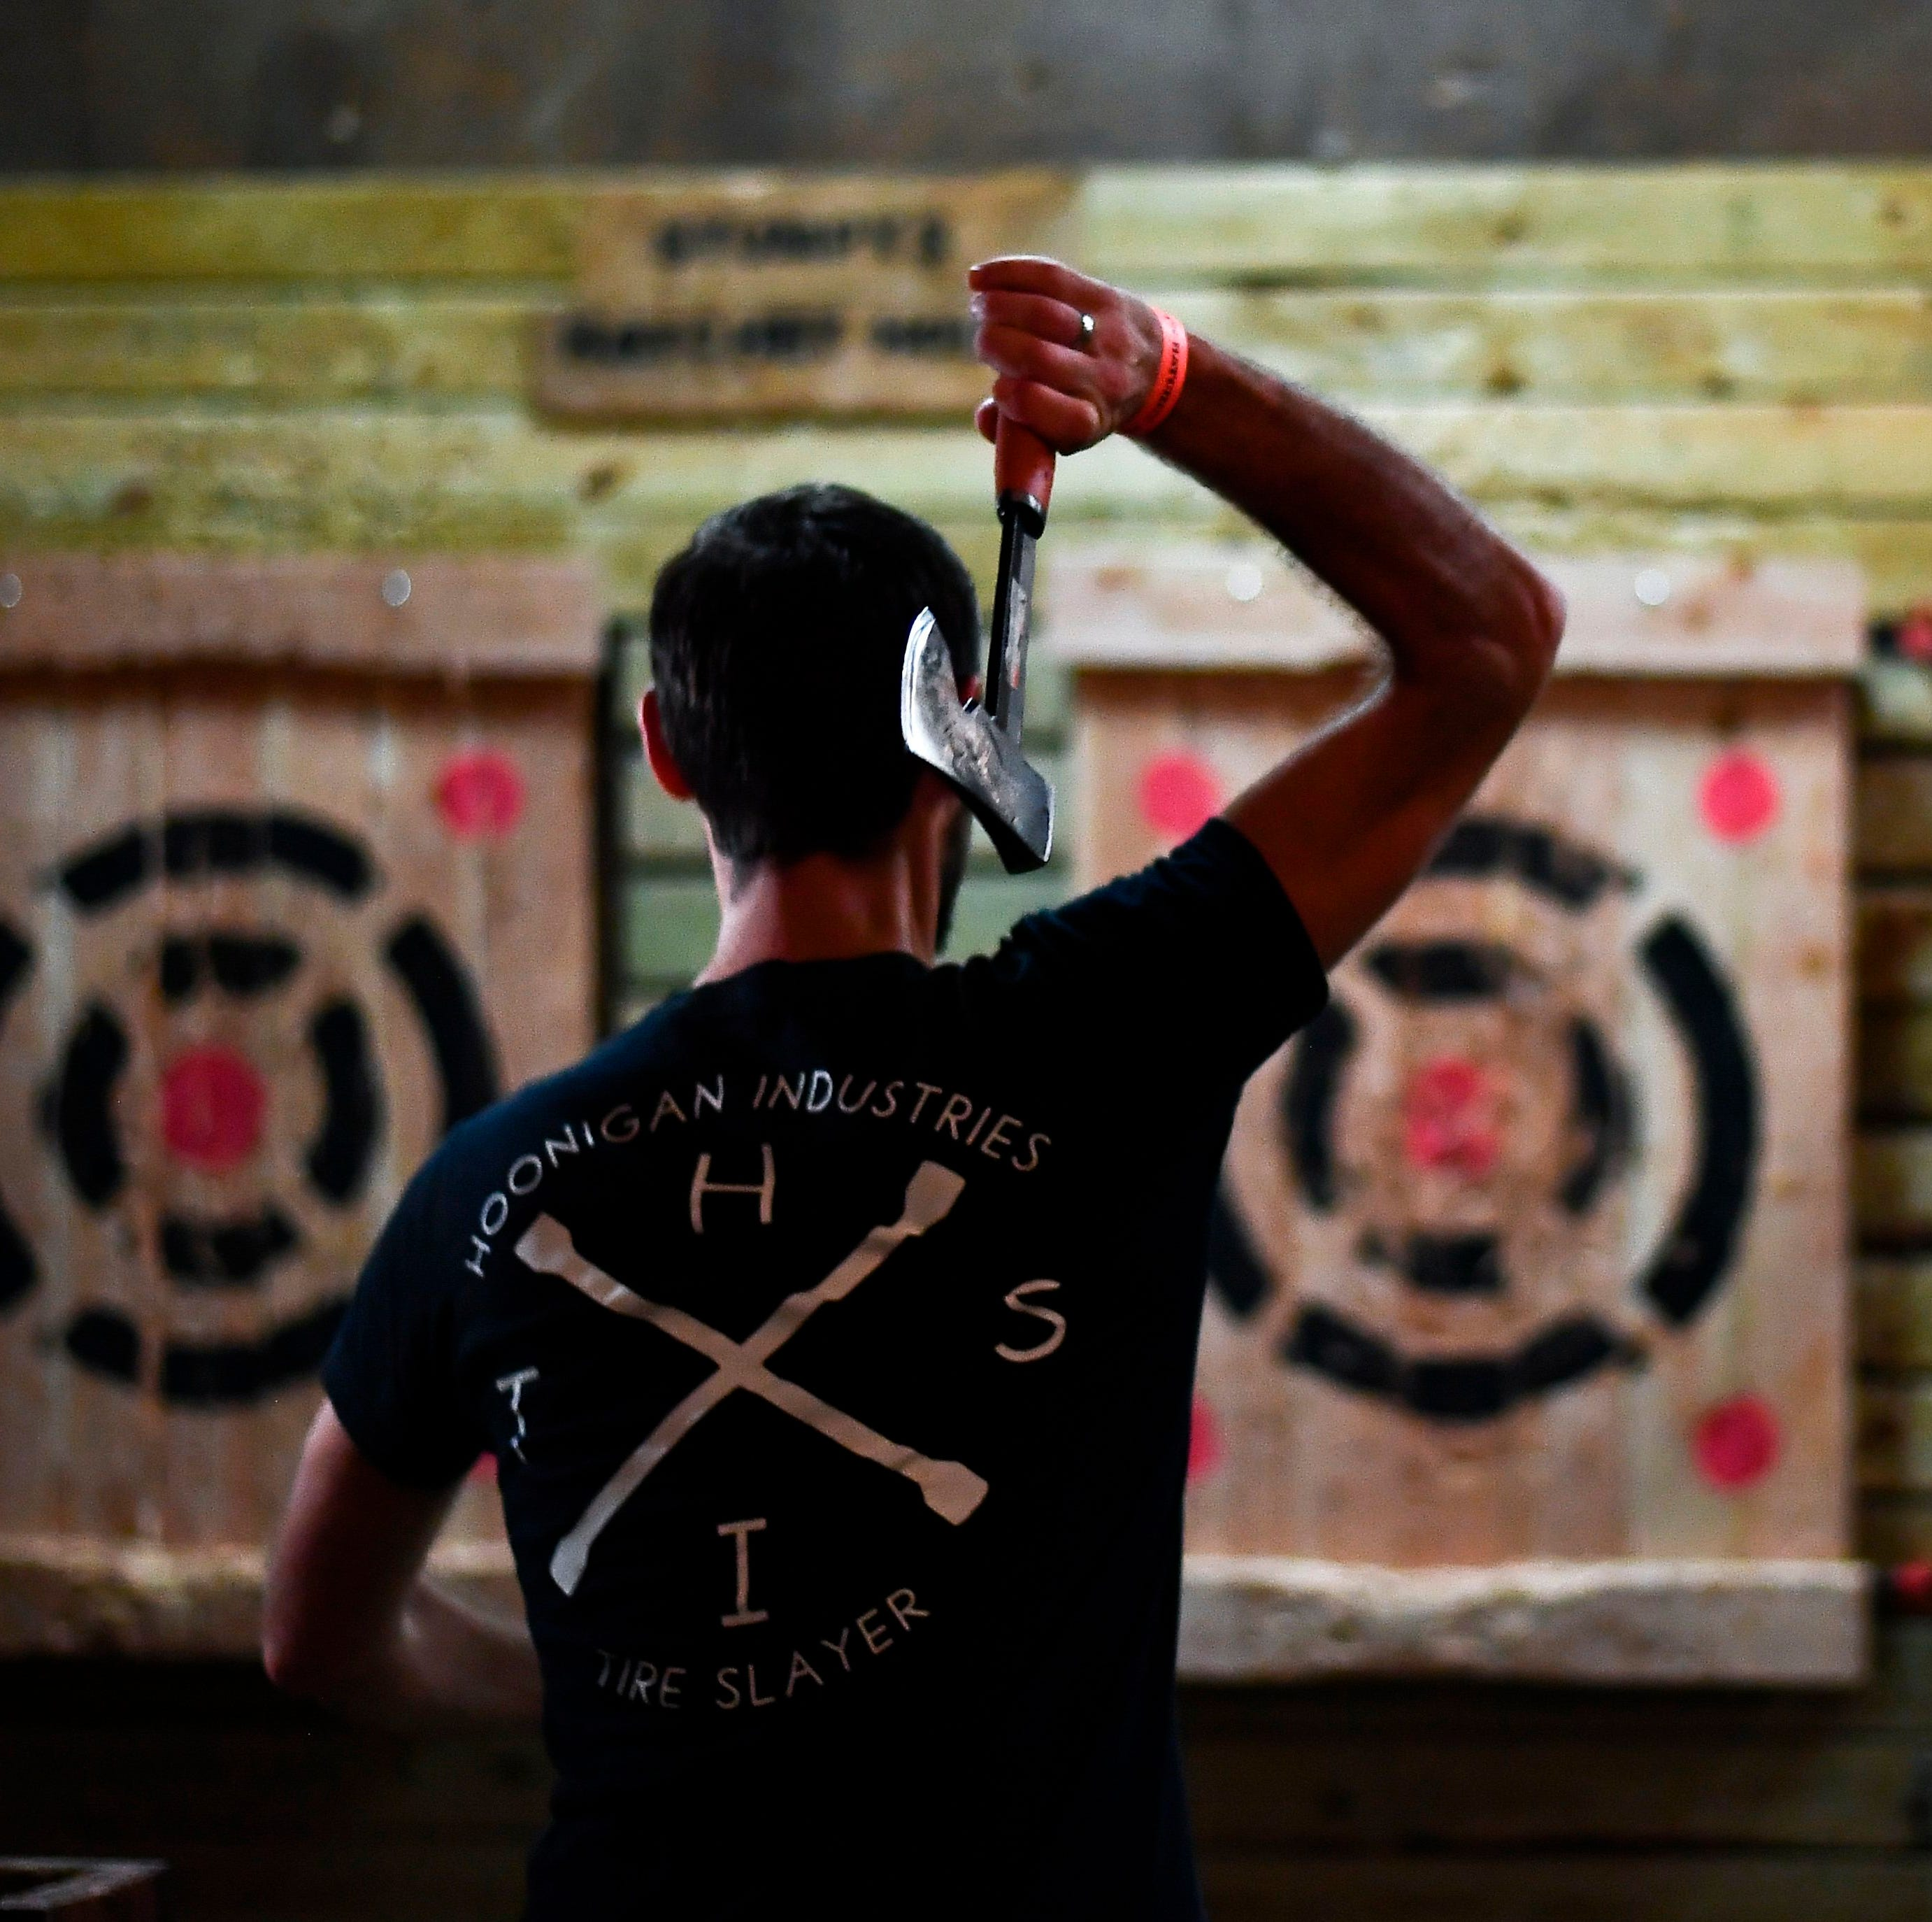 Does Rochester have room for two ax-throwing bars?